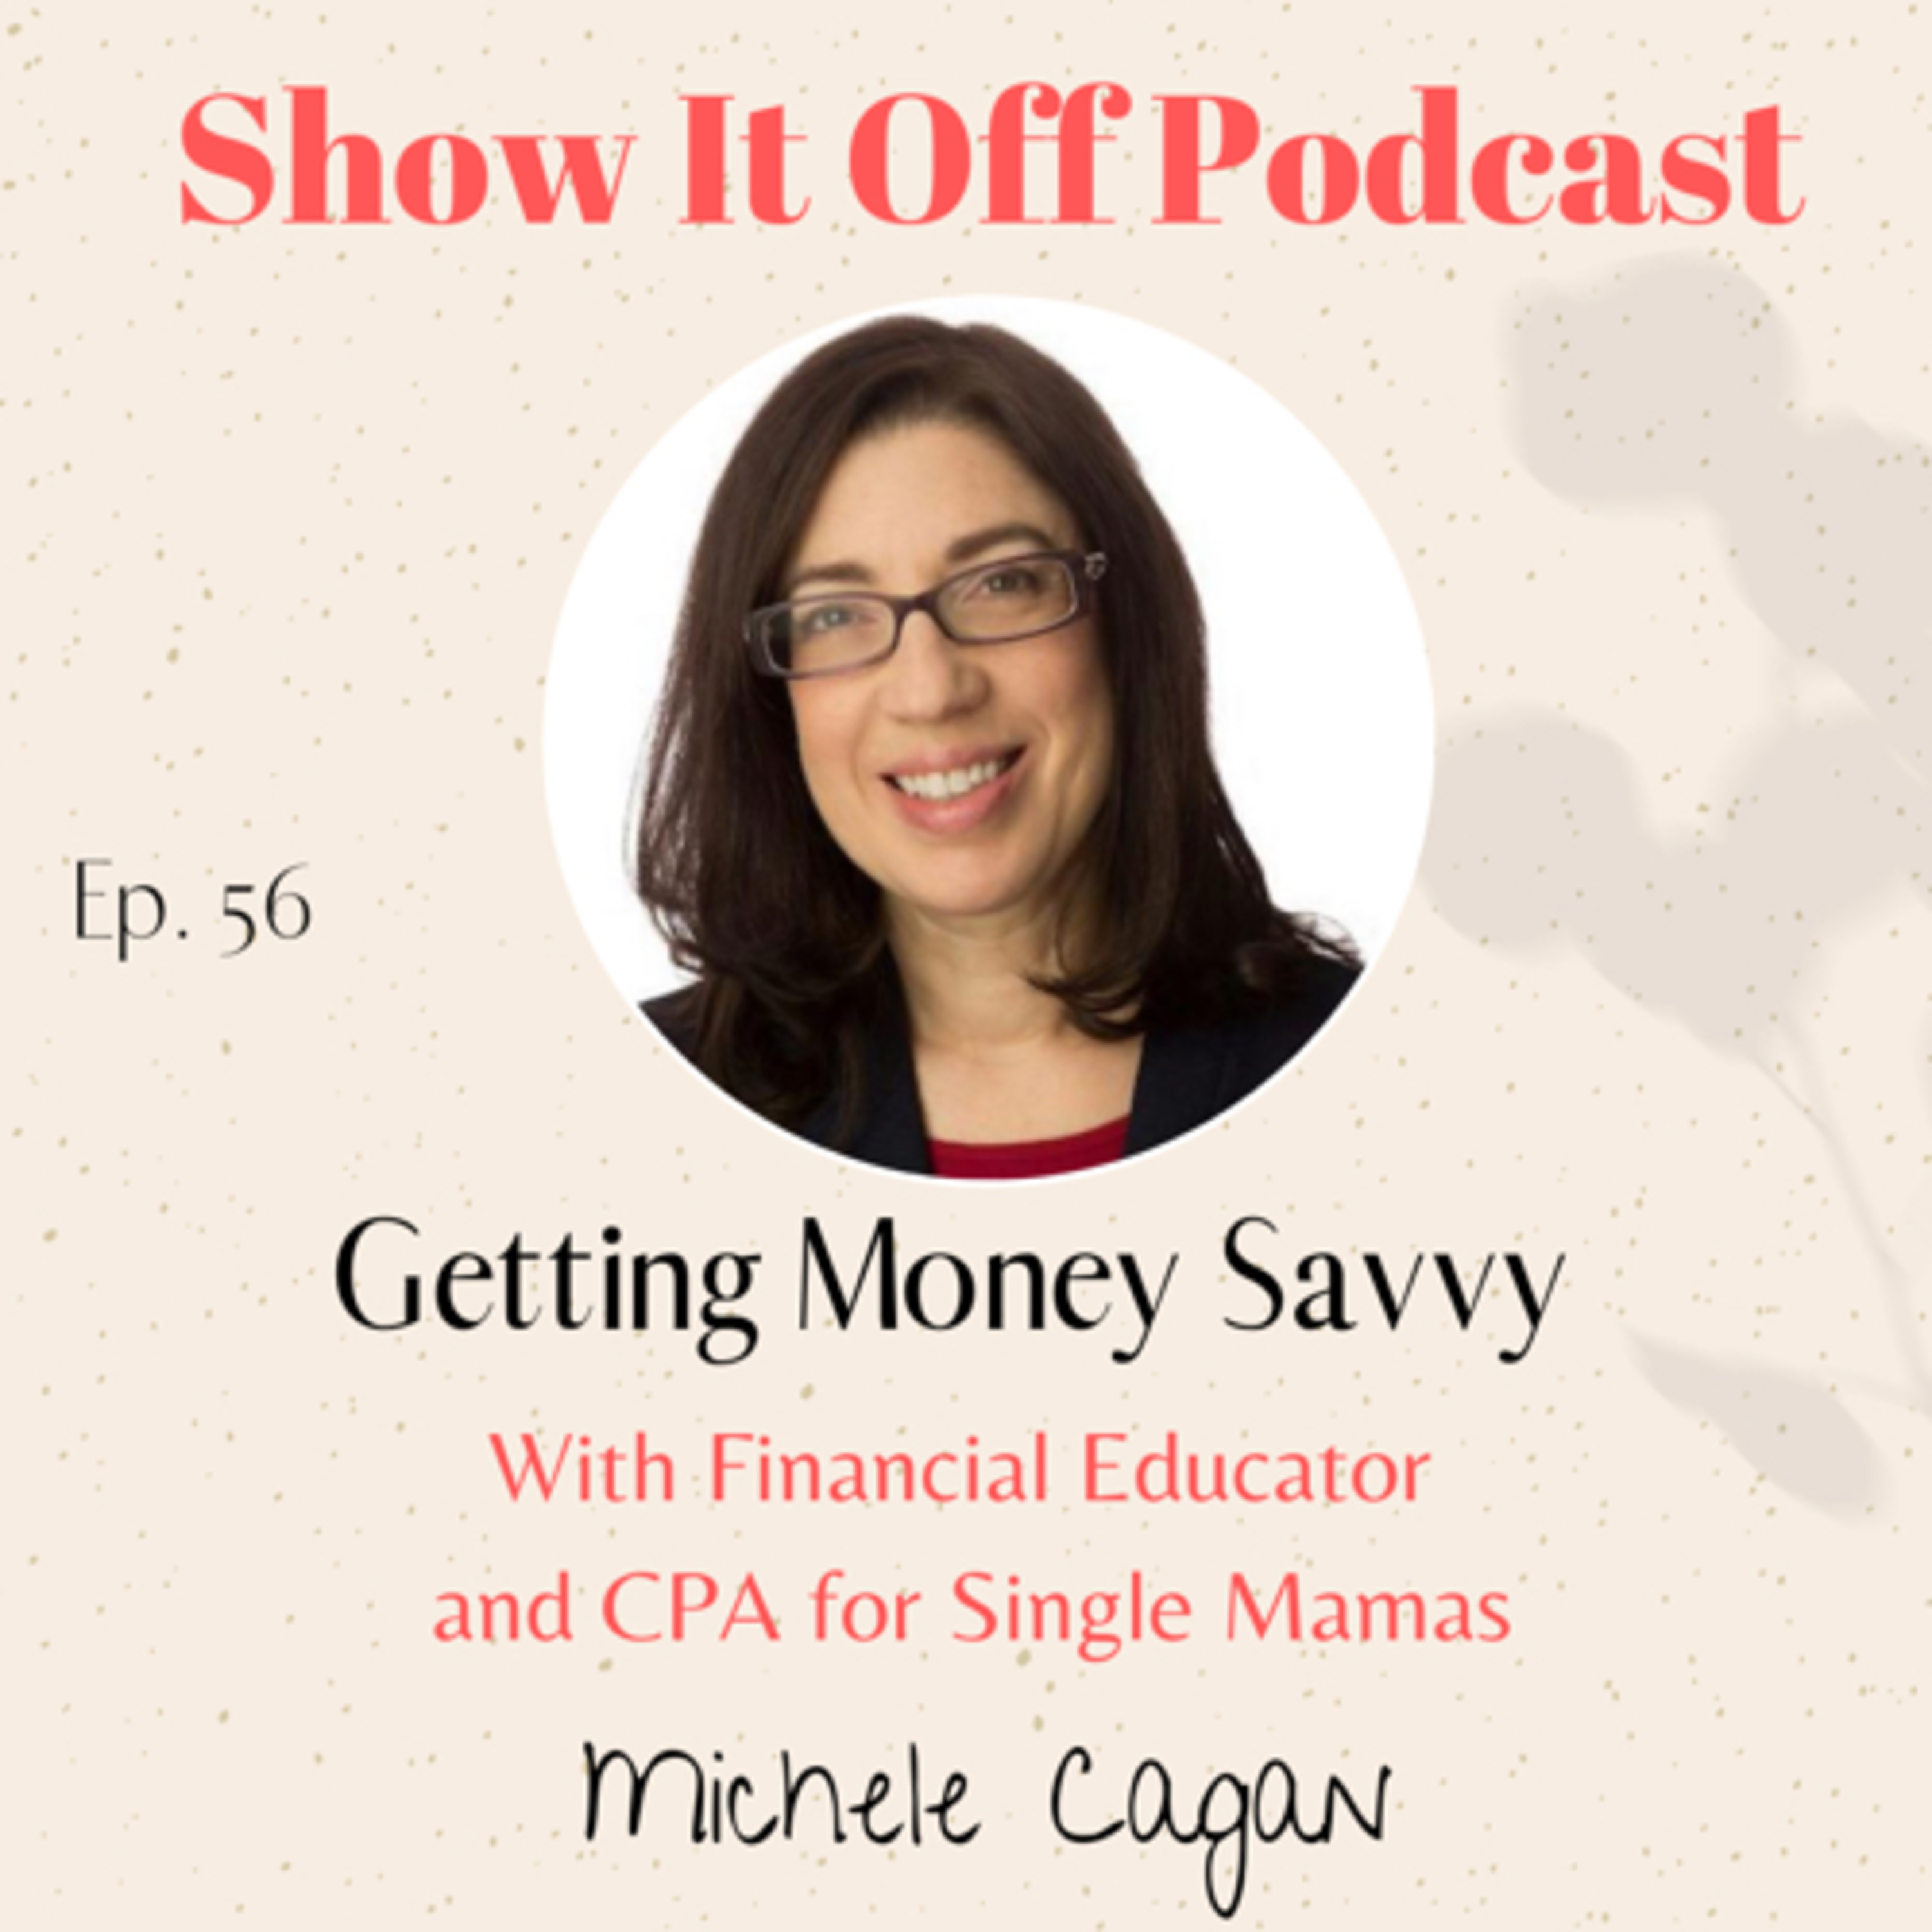 Getting Money Savvy with Financial Educator and CPA Michele Cagan